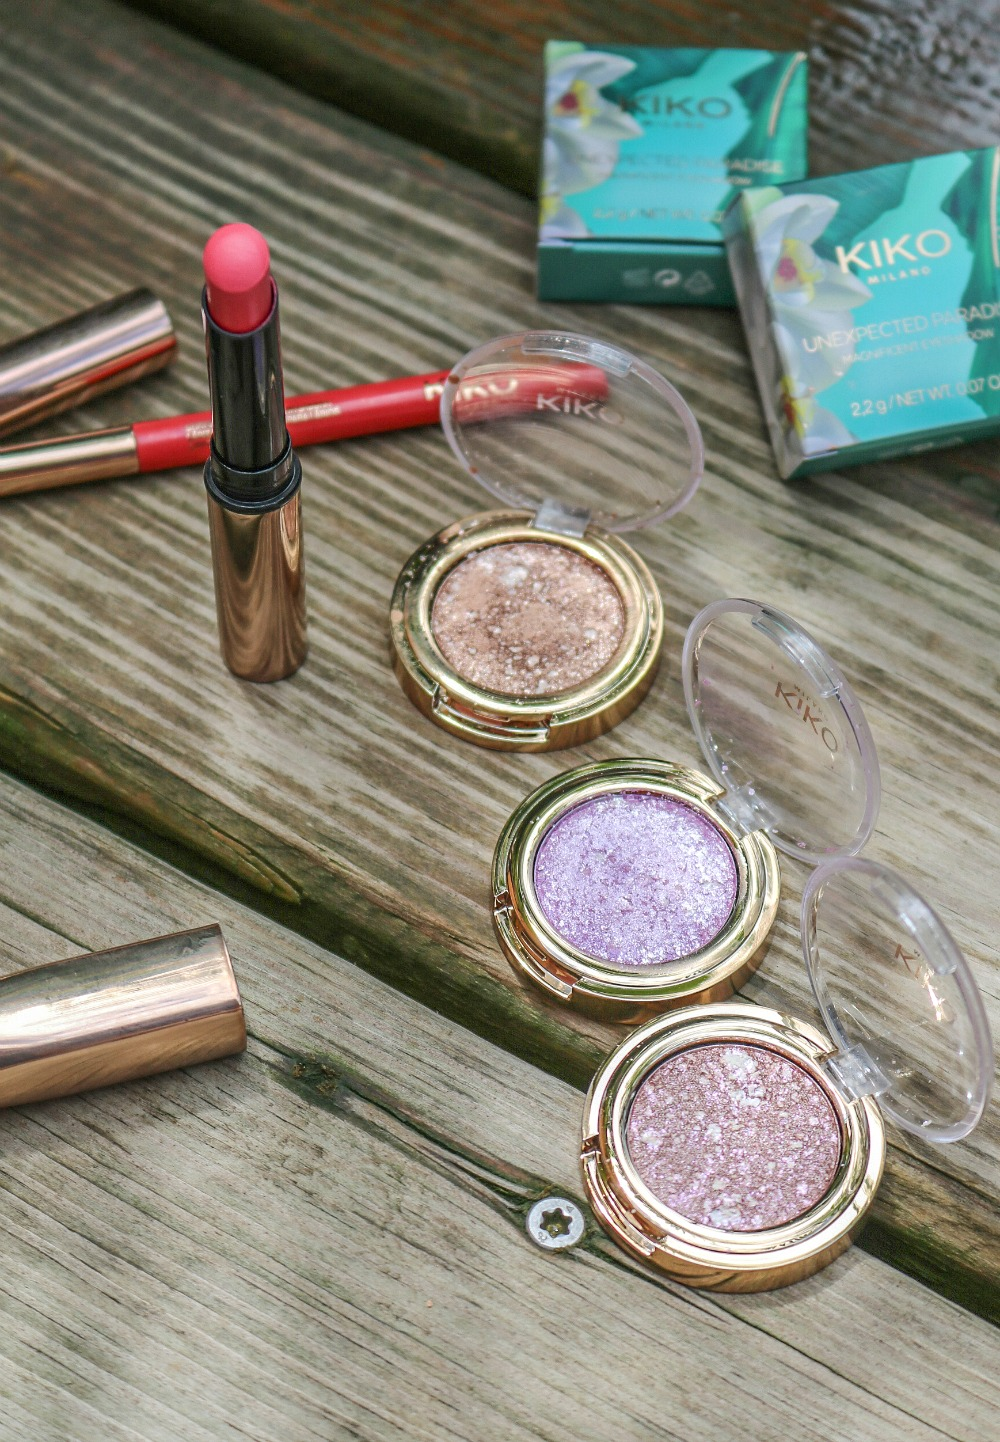 Kiko Unexpected Paradise Summer Collection I Dreaminlace.com